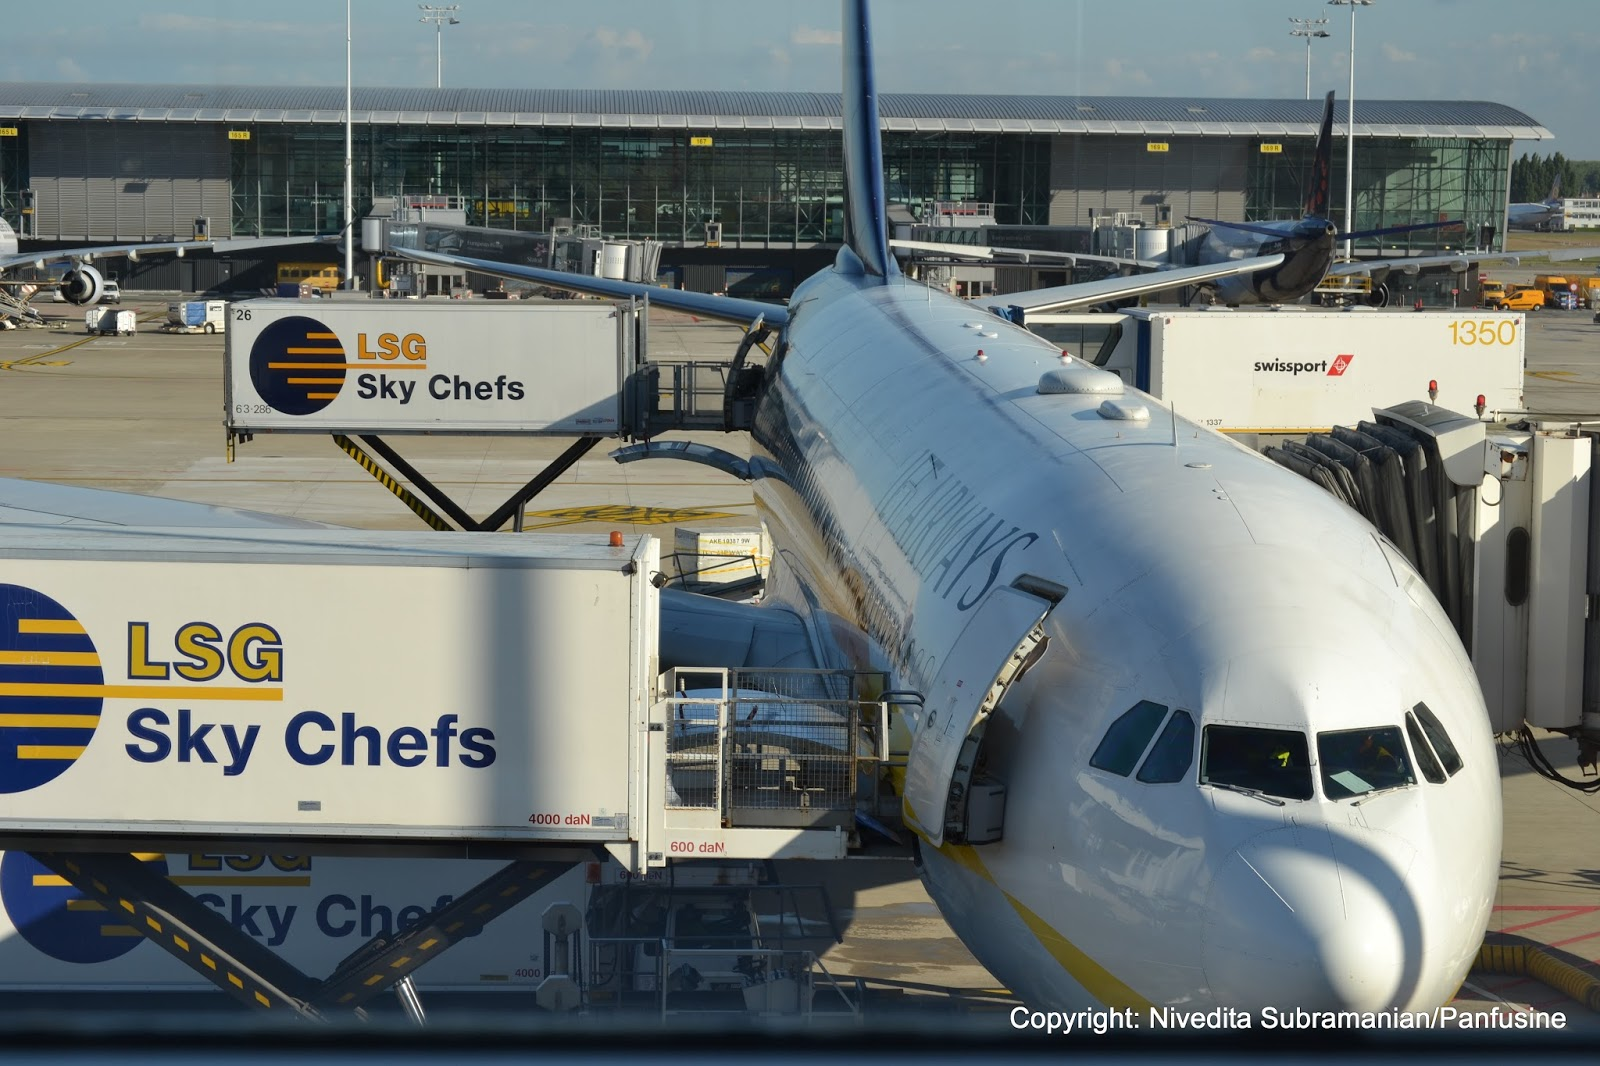 Airline Food review - The Good, the Bad & the Ugly